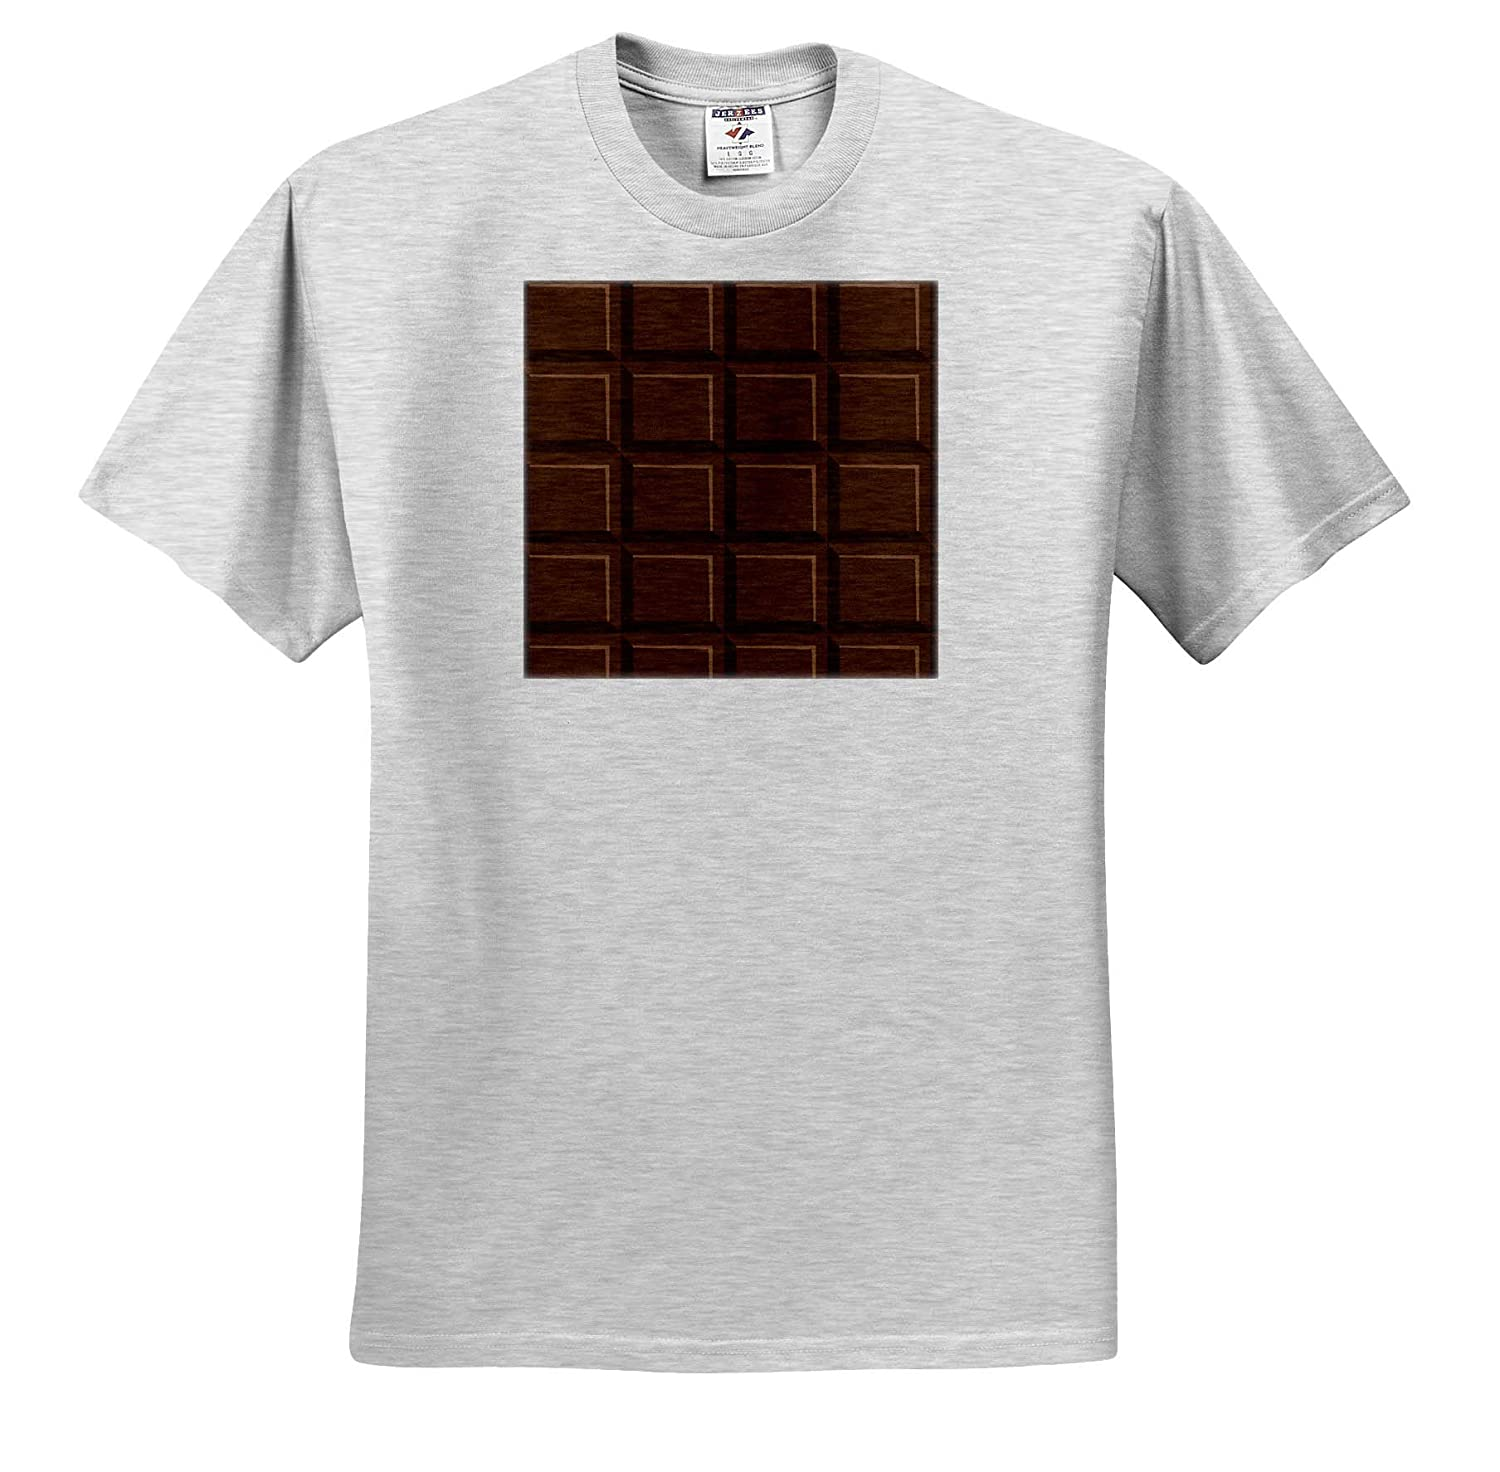 T-Shirts 3dRose Sven Herkenrath Art Pattern Art of Sweet Candy Chocolate Funny Graphic